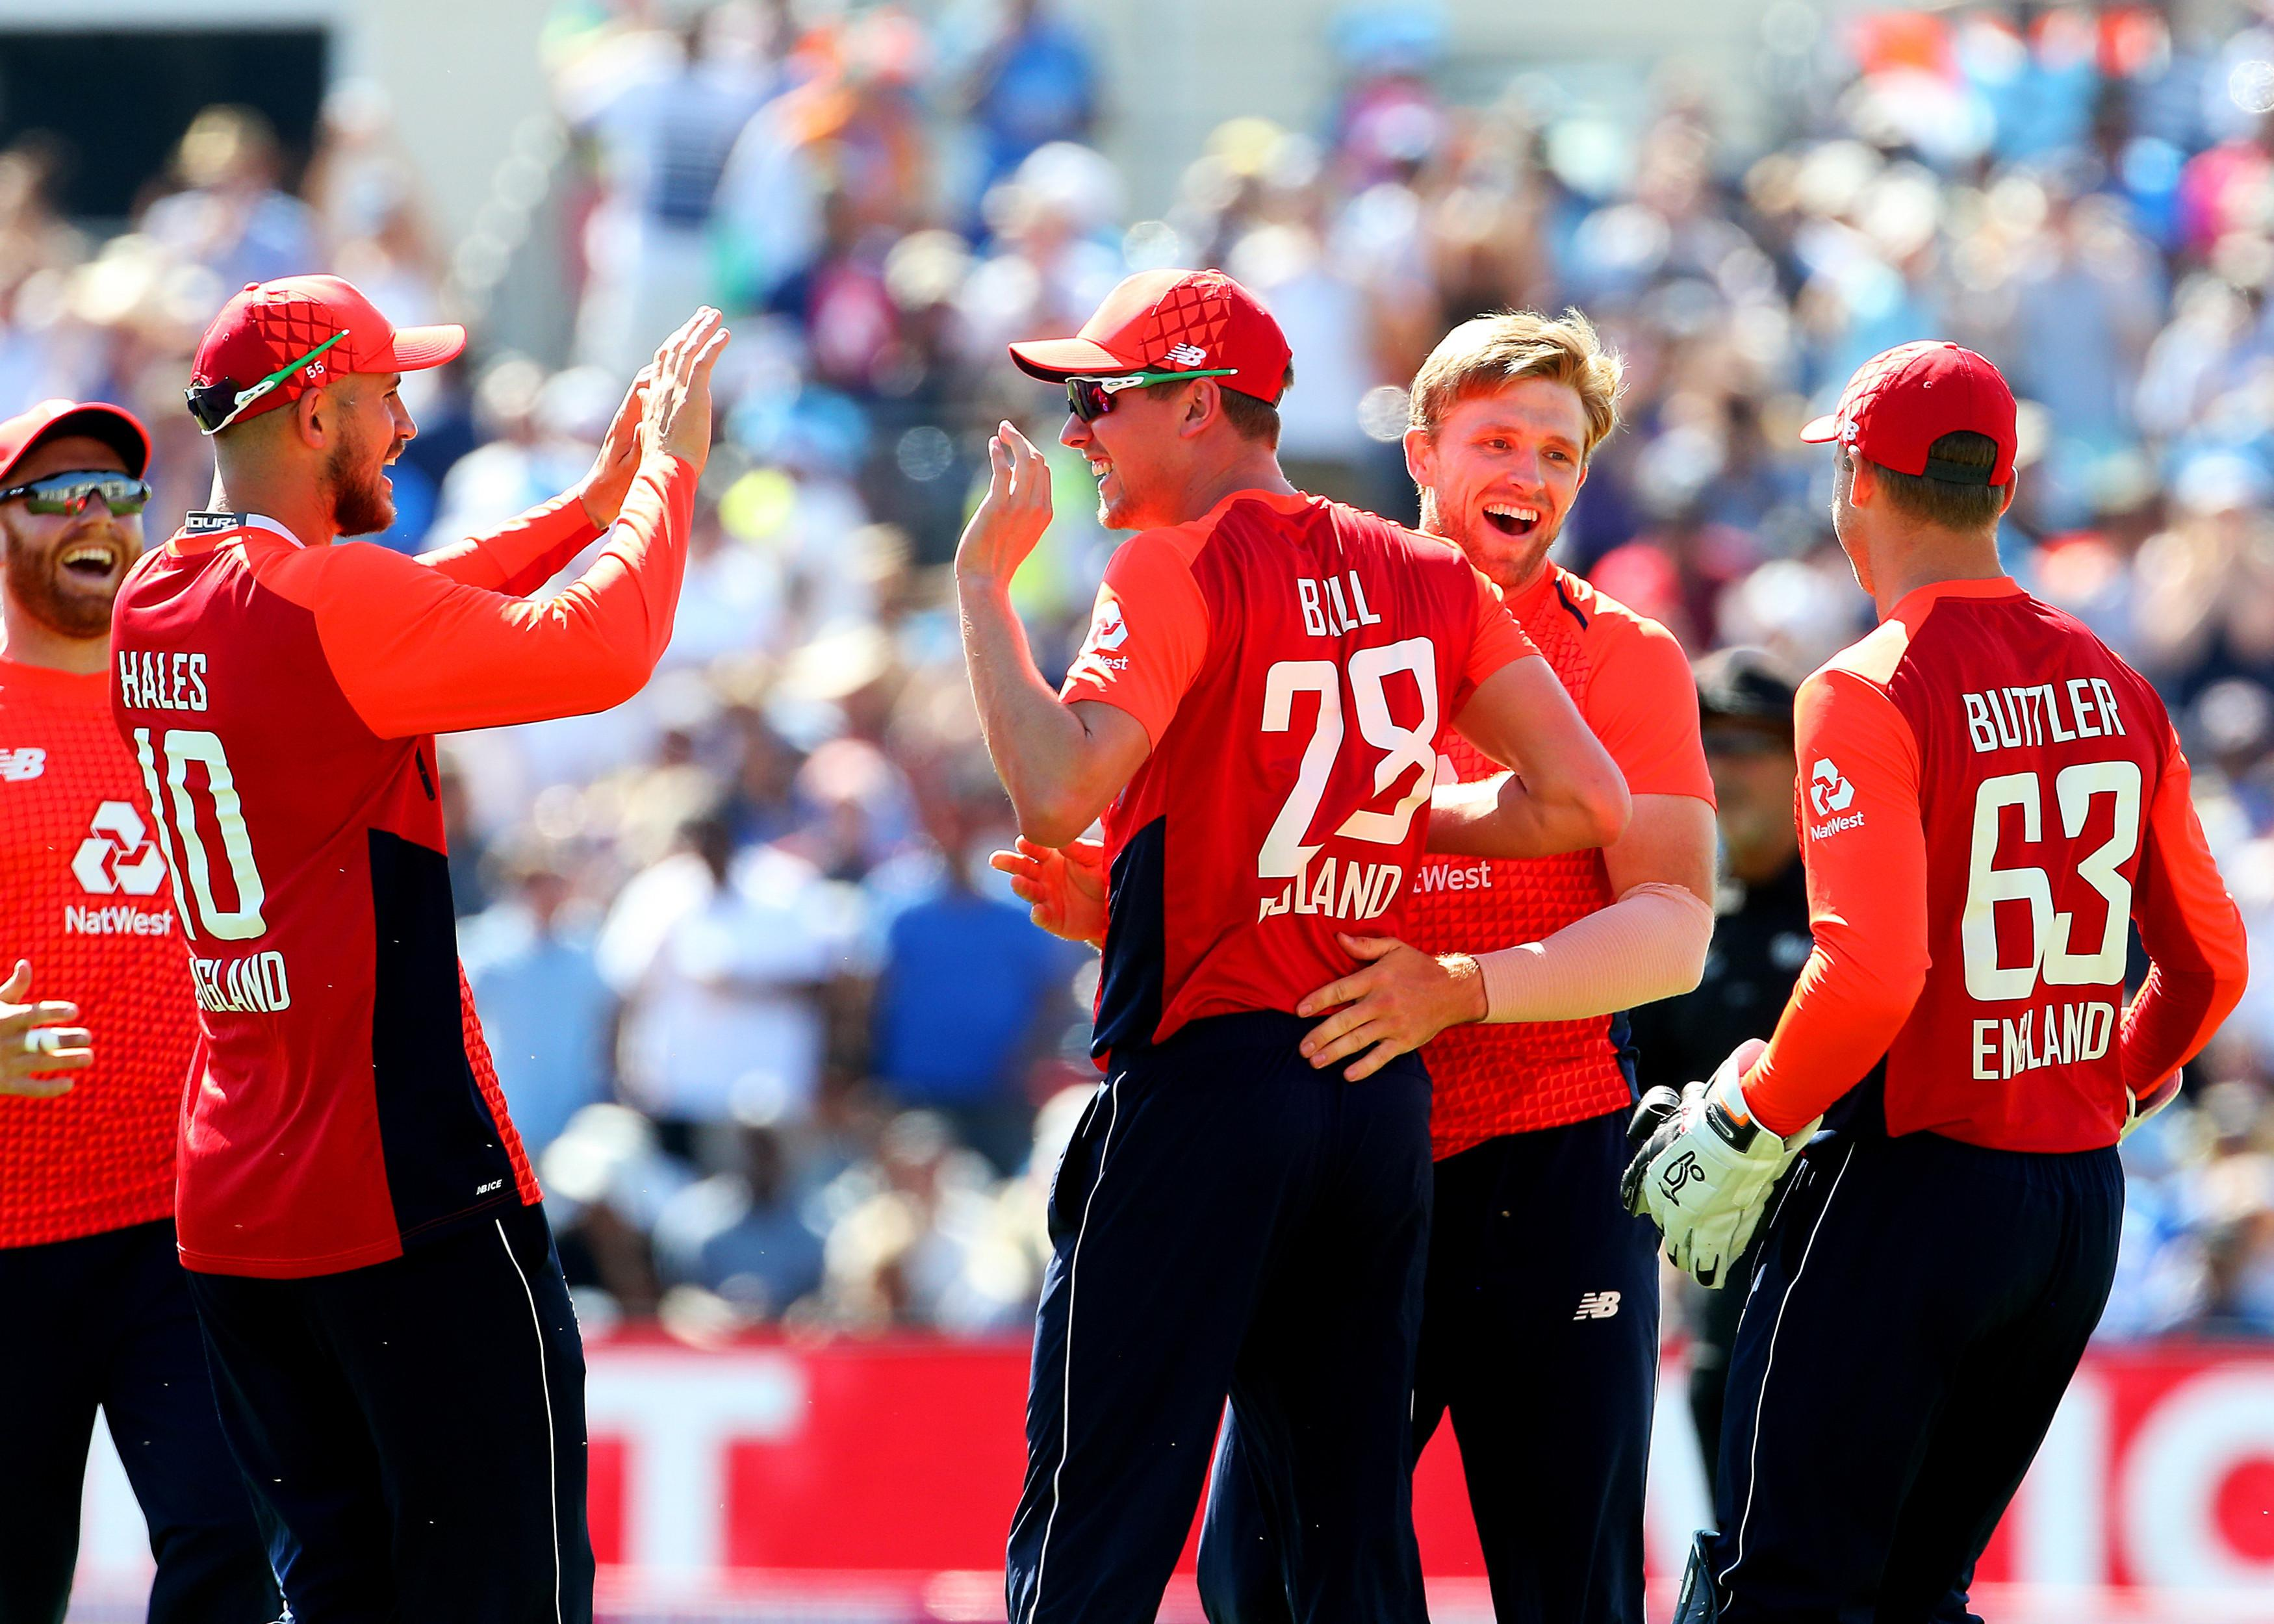 England are the leading 50-over side in the world and will be keen to respond